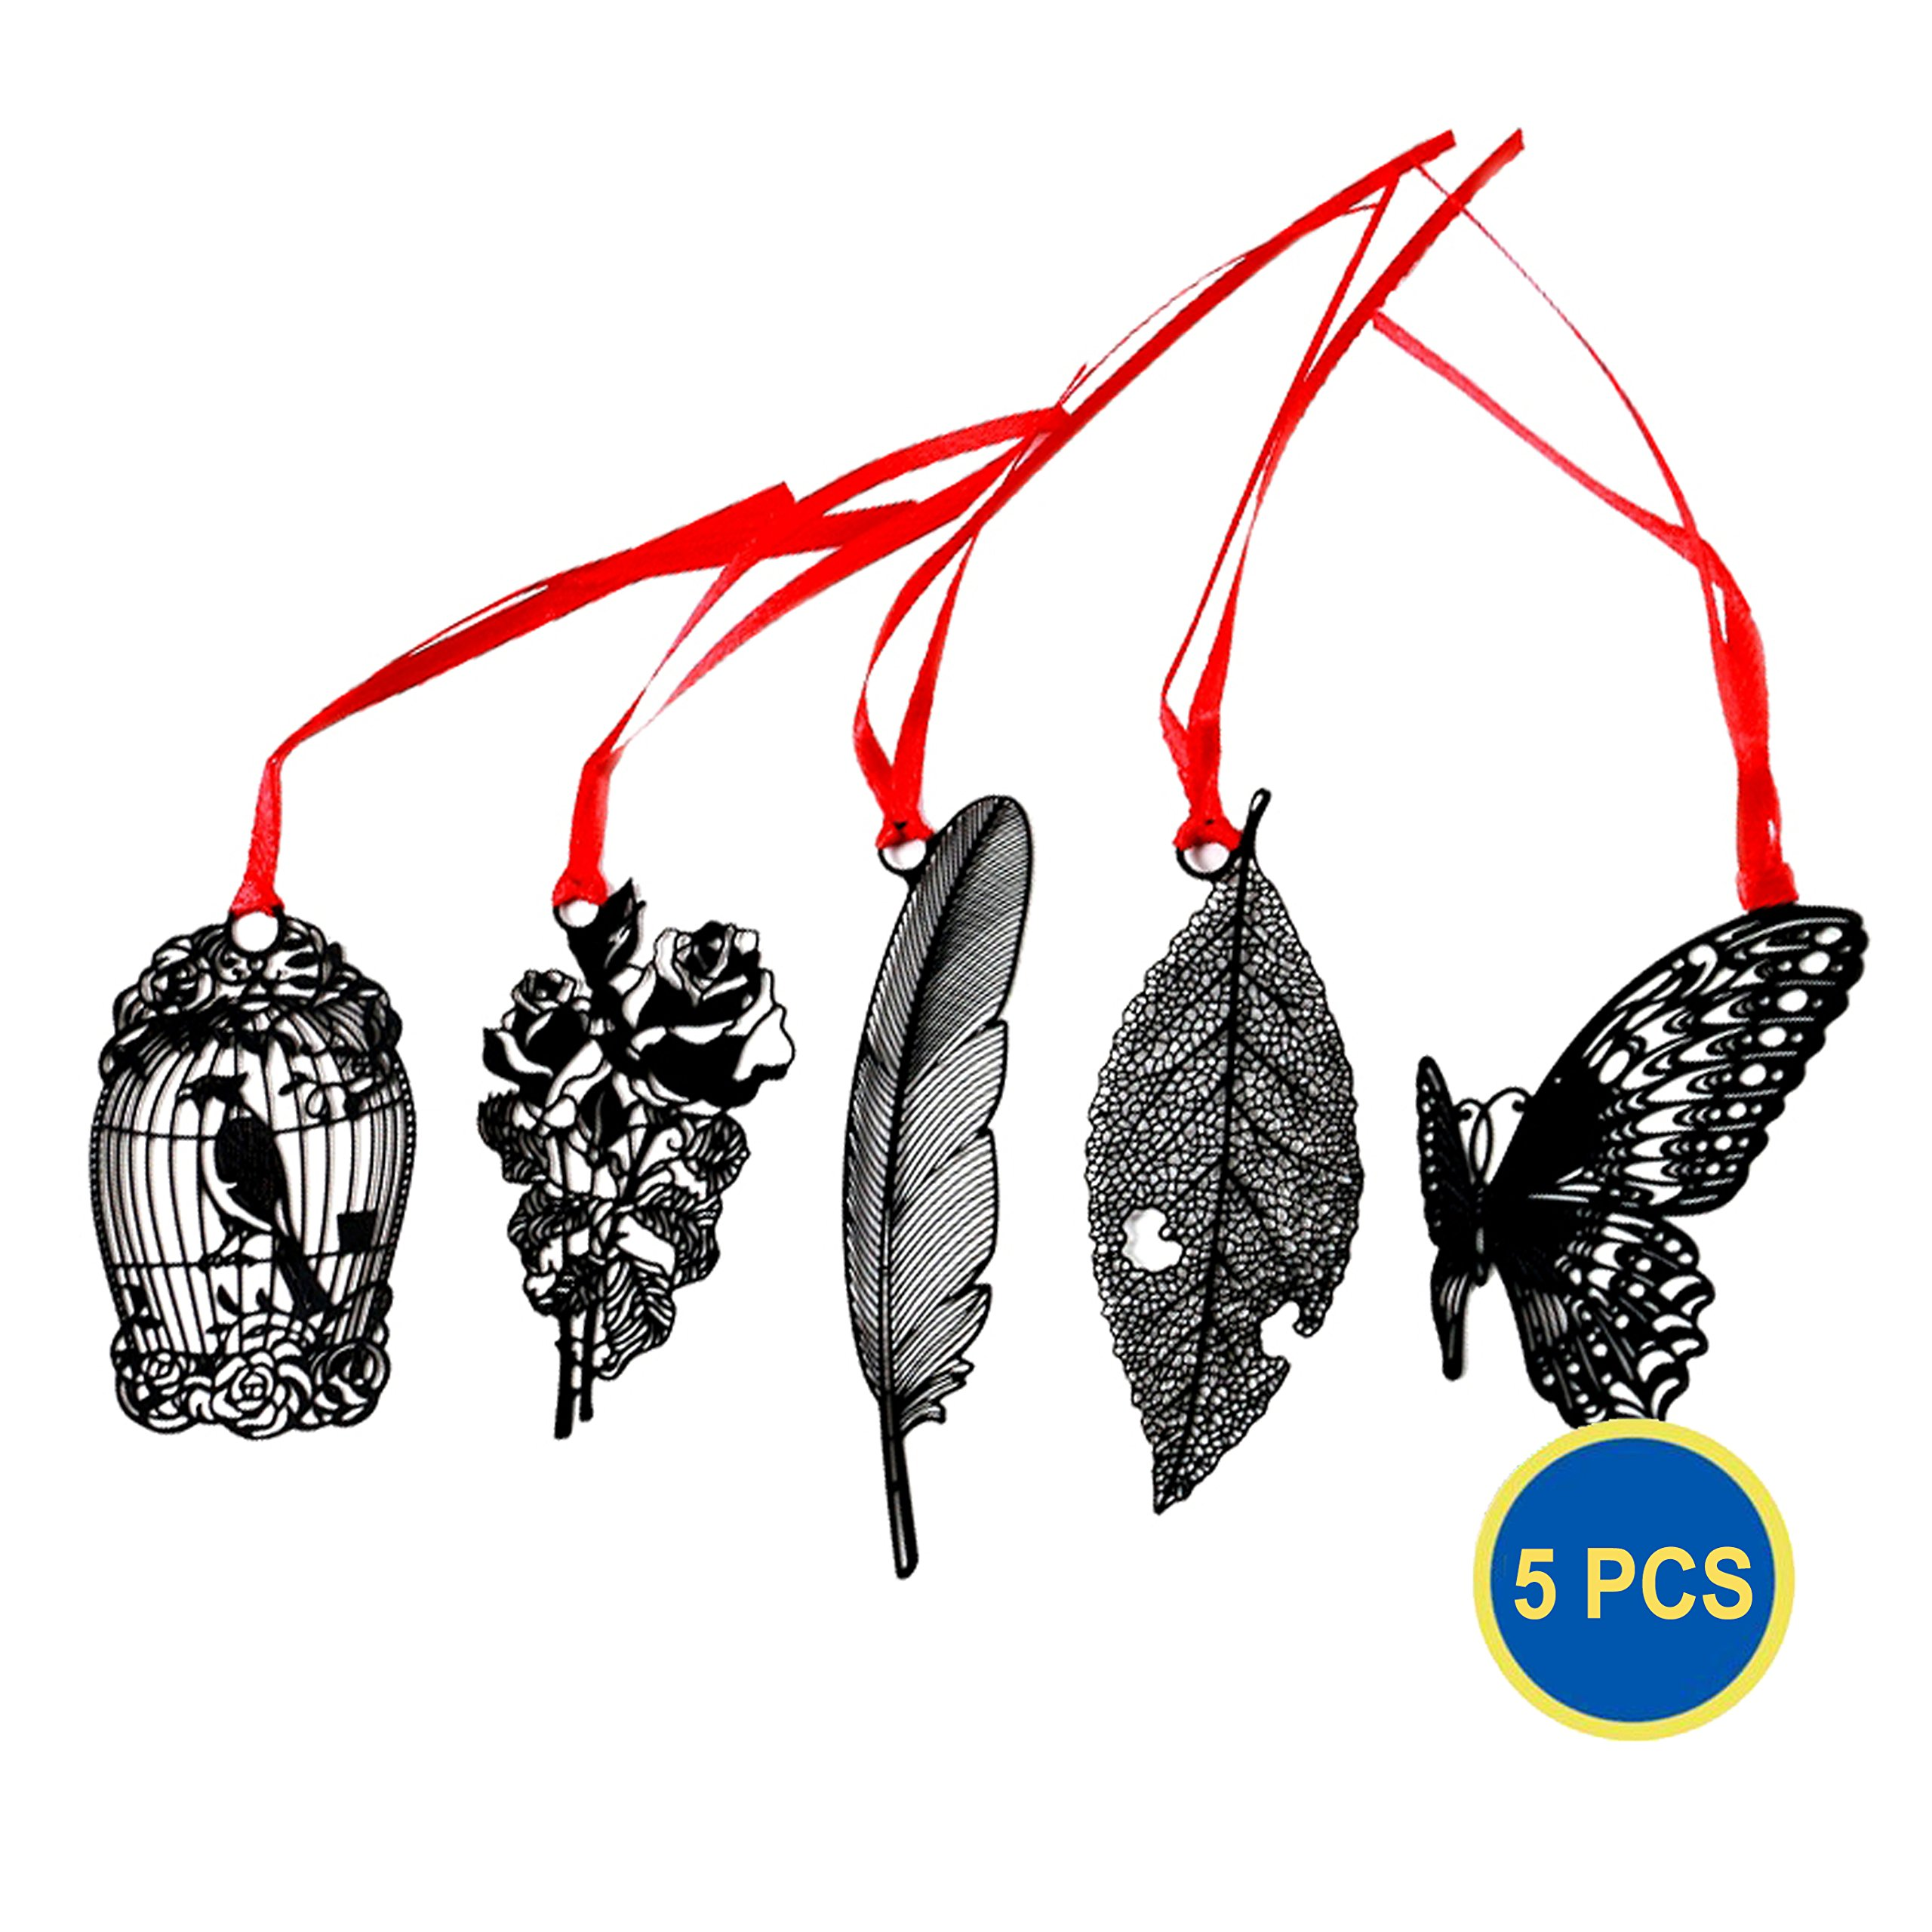 Gadget.Cool Creative Metal Bookmarks - Wholesale Pack of 5, Bundle Value Set, Stainless Steel Material, Stylish and Unique, Ribbon Red Tassel, Awesome Gift(Stainless Steel)